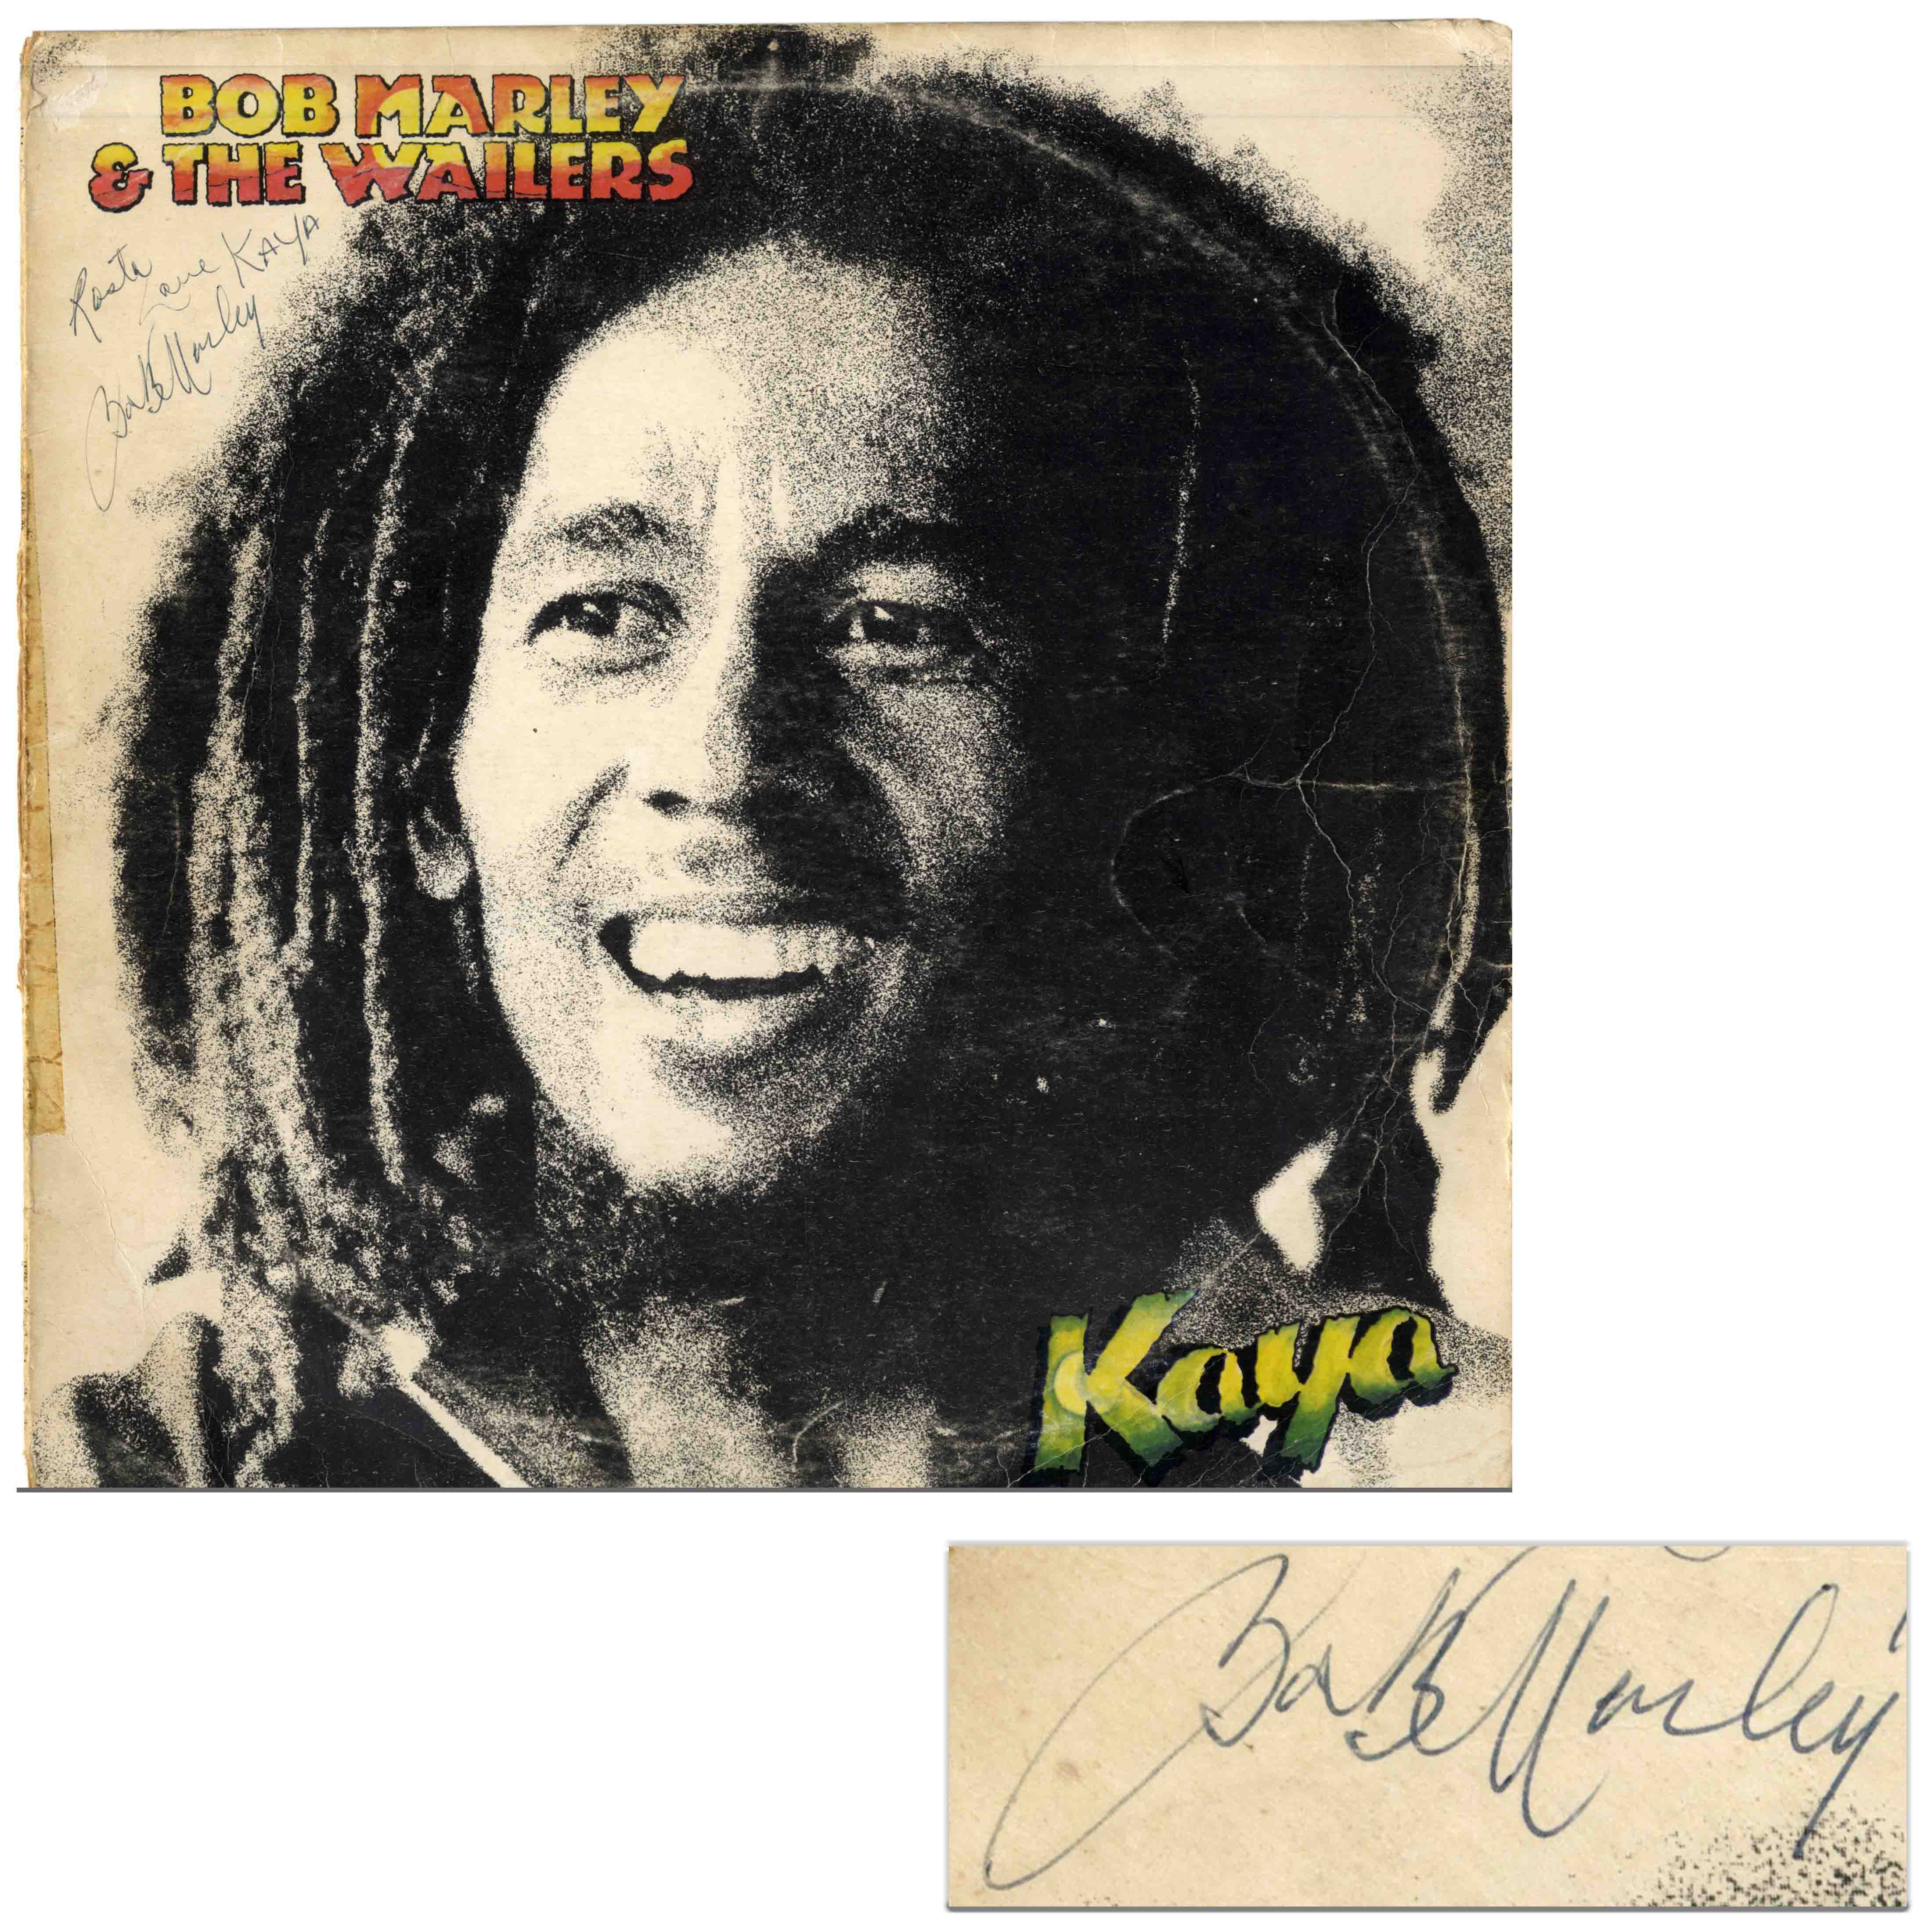 Free Appraisal For Your Bob Marley Autograph From Nate D